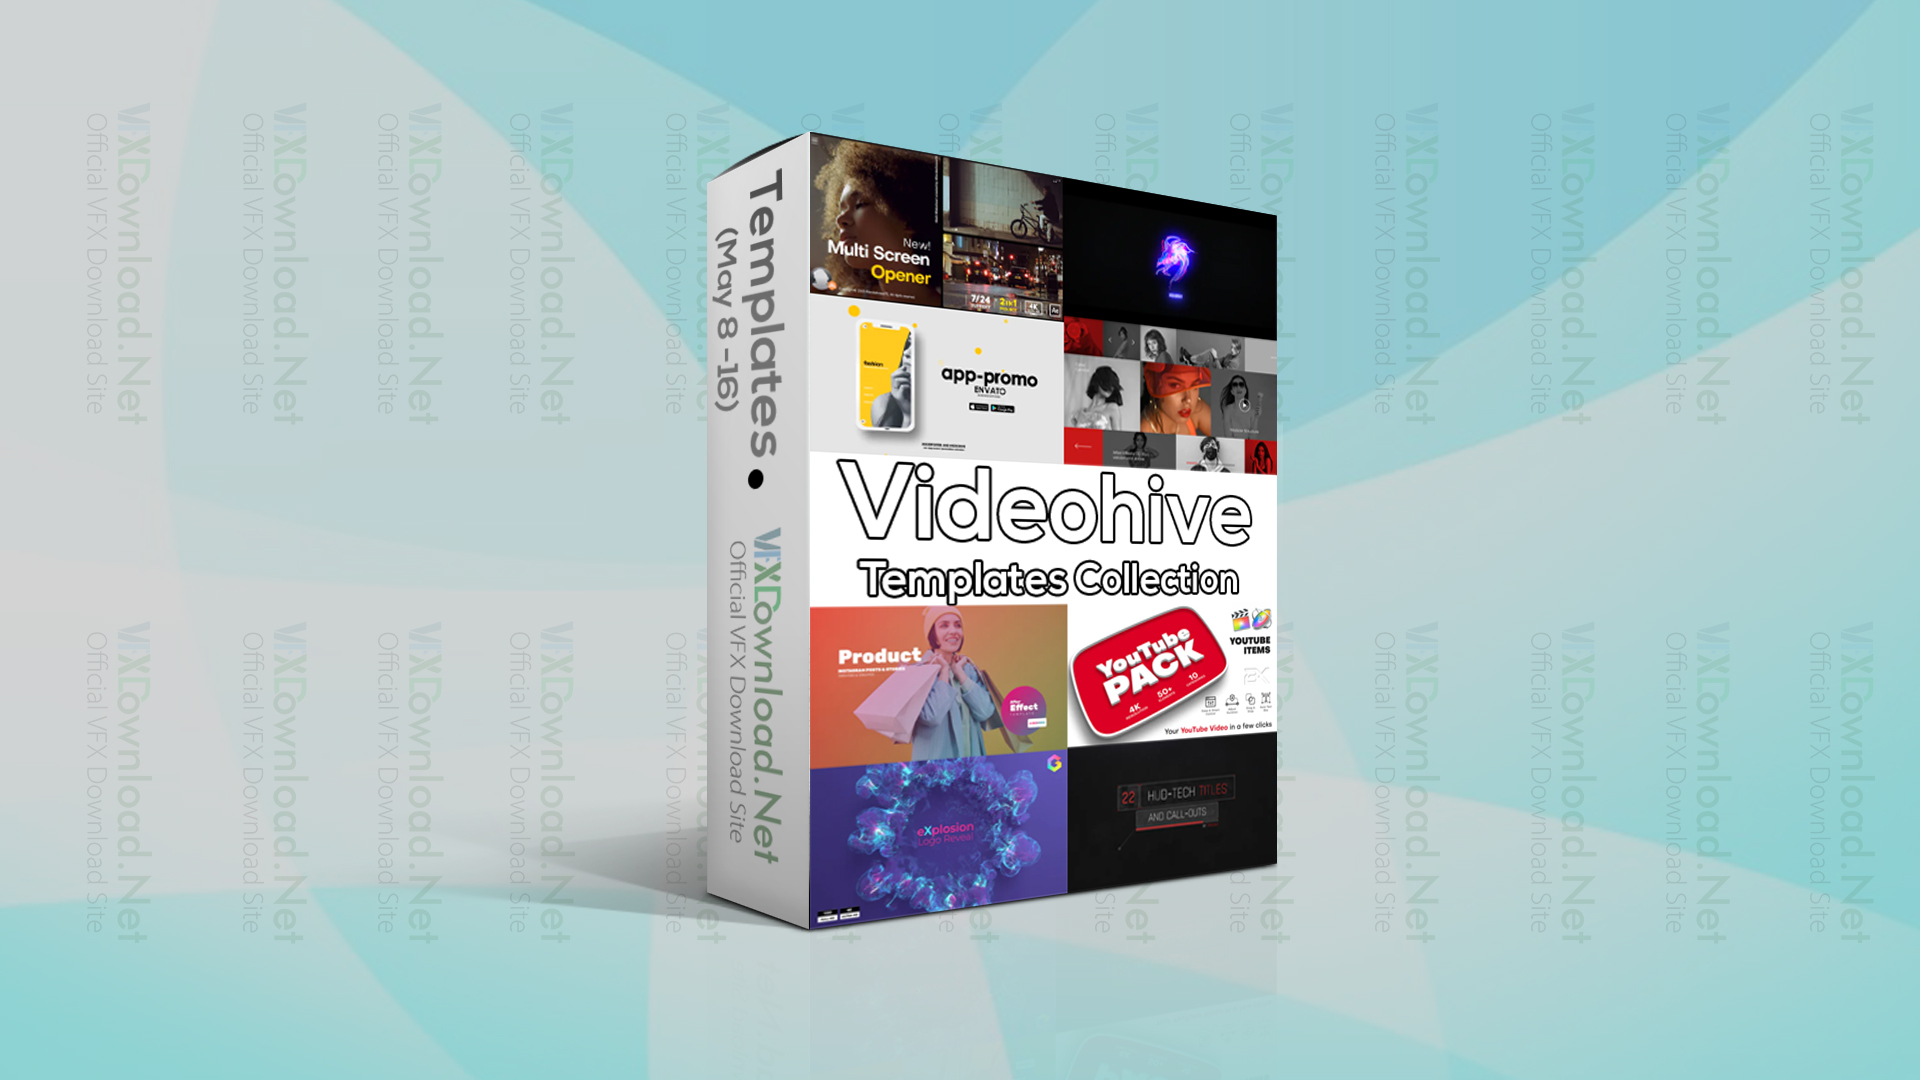 Videohive Templates Collection (8 to 15 May 2021)